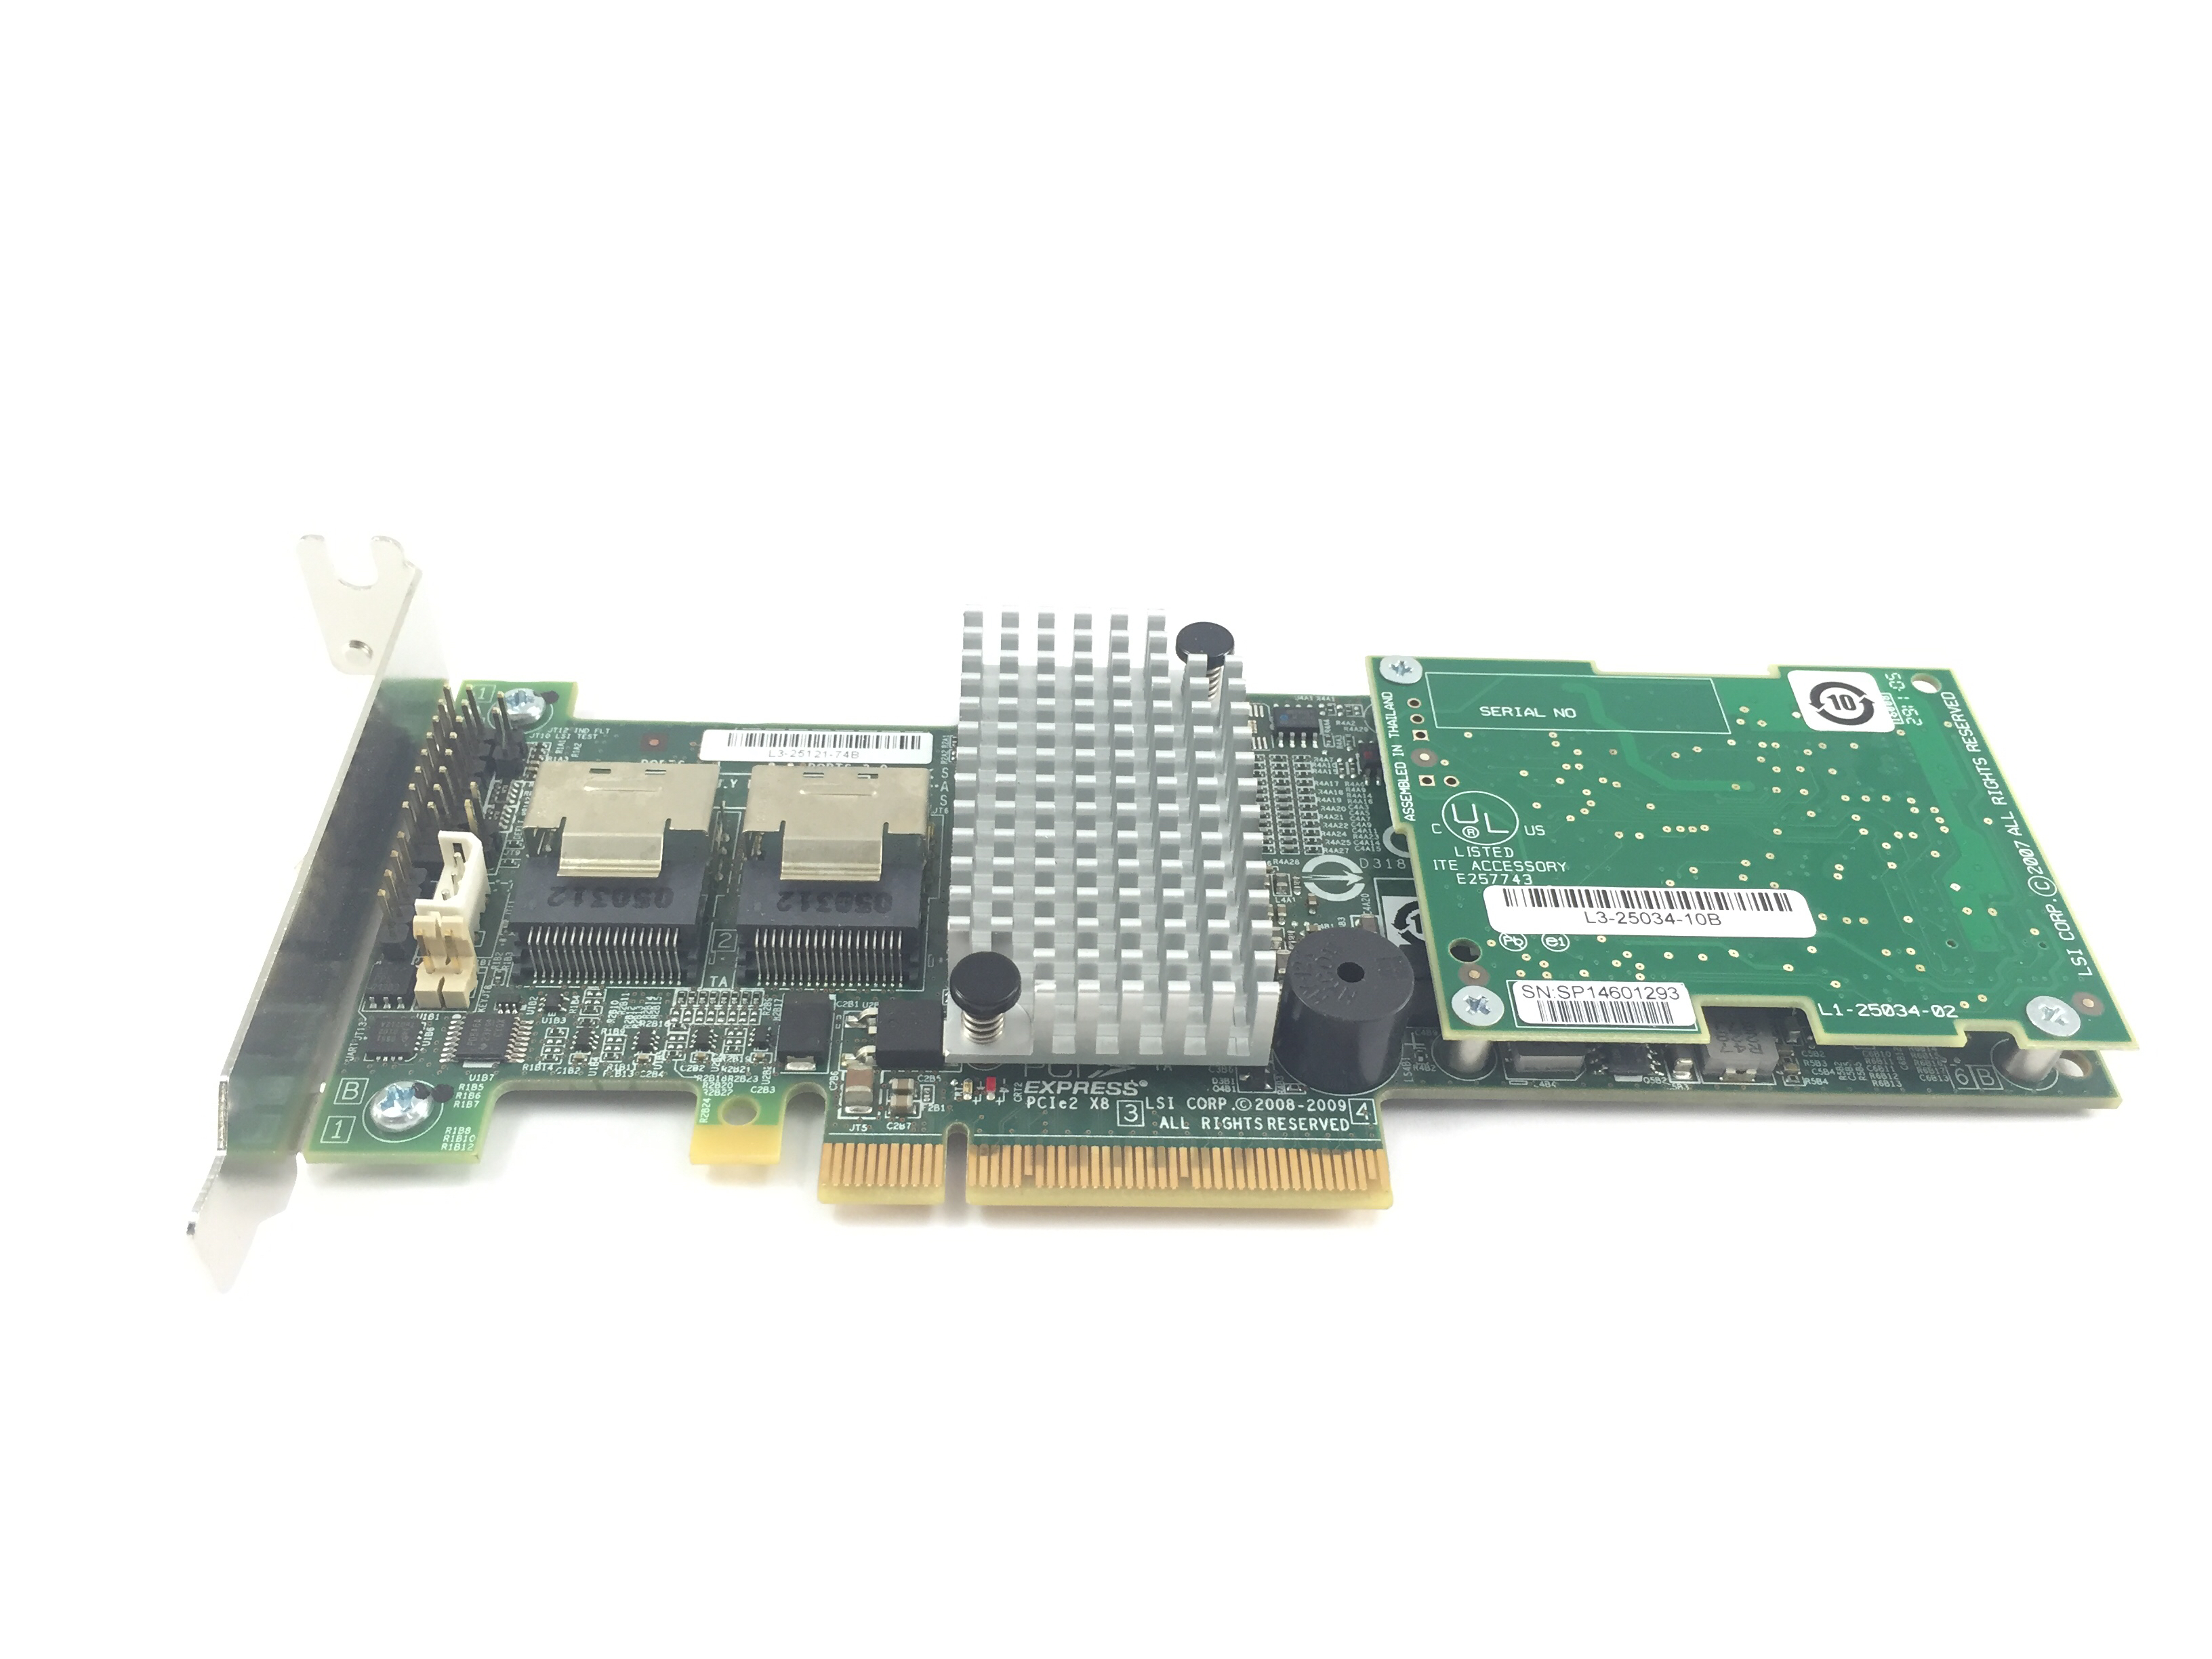 LSI 6Gb/s SAS Host Bus Adapter Interposer Board (L3-25034-10B)